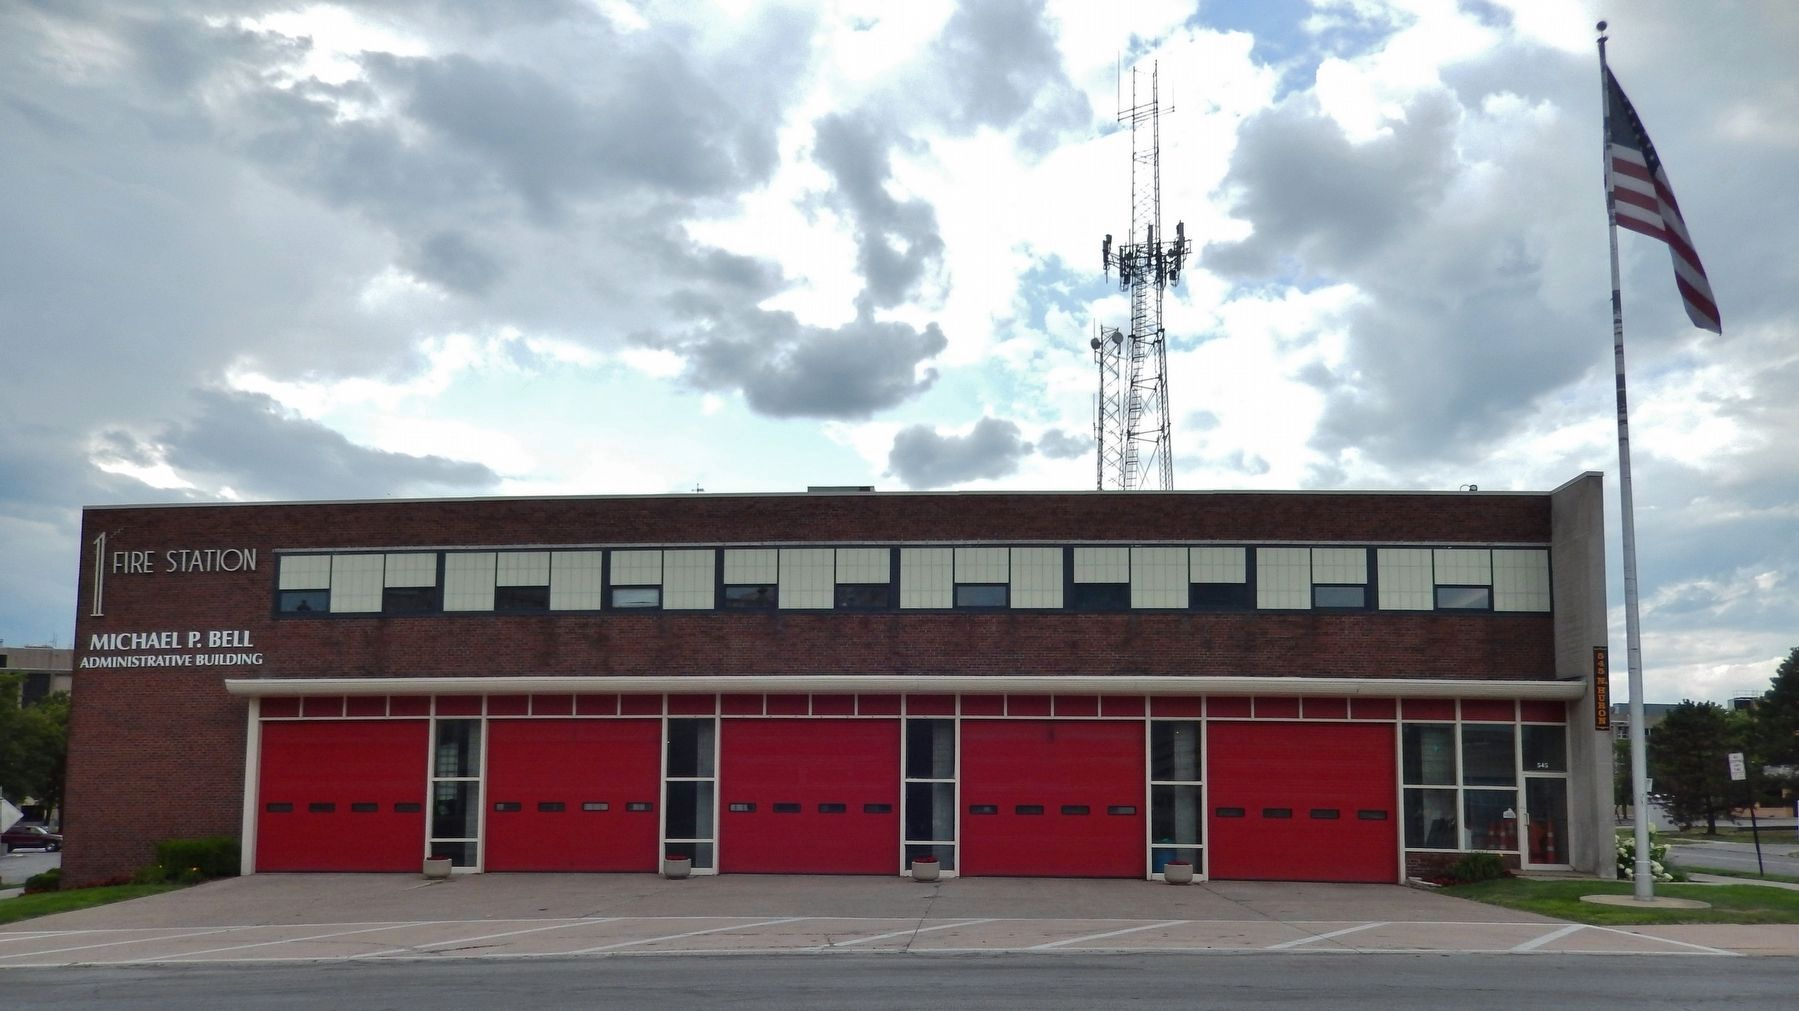 Toledo Fire Station 1 (<i>located on North Huron Street, just northwest of marker</i>) image. Click for full size.